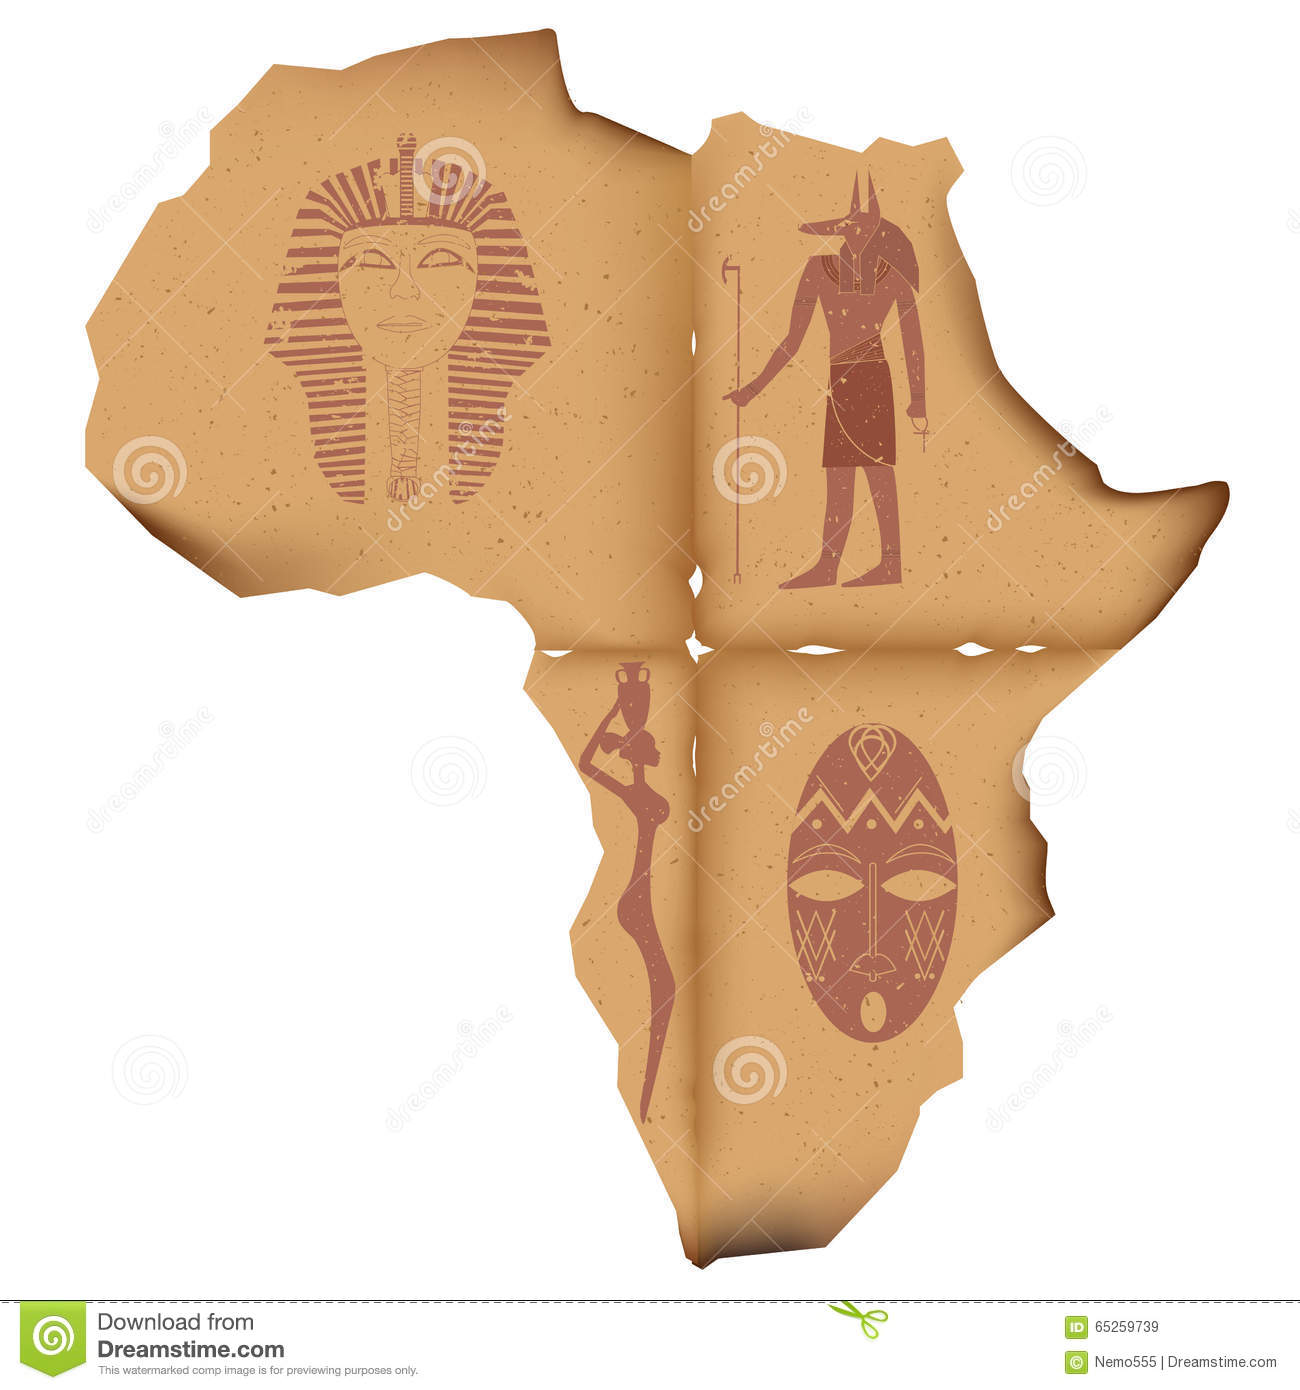 old-paper-shape-african-continent-images-piece-battered-charred-africa-faded-pharaoh-masks-anubis-65259739